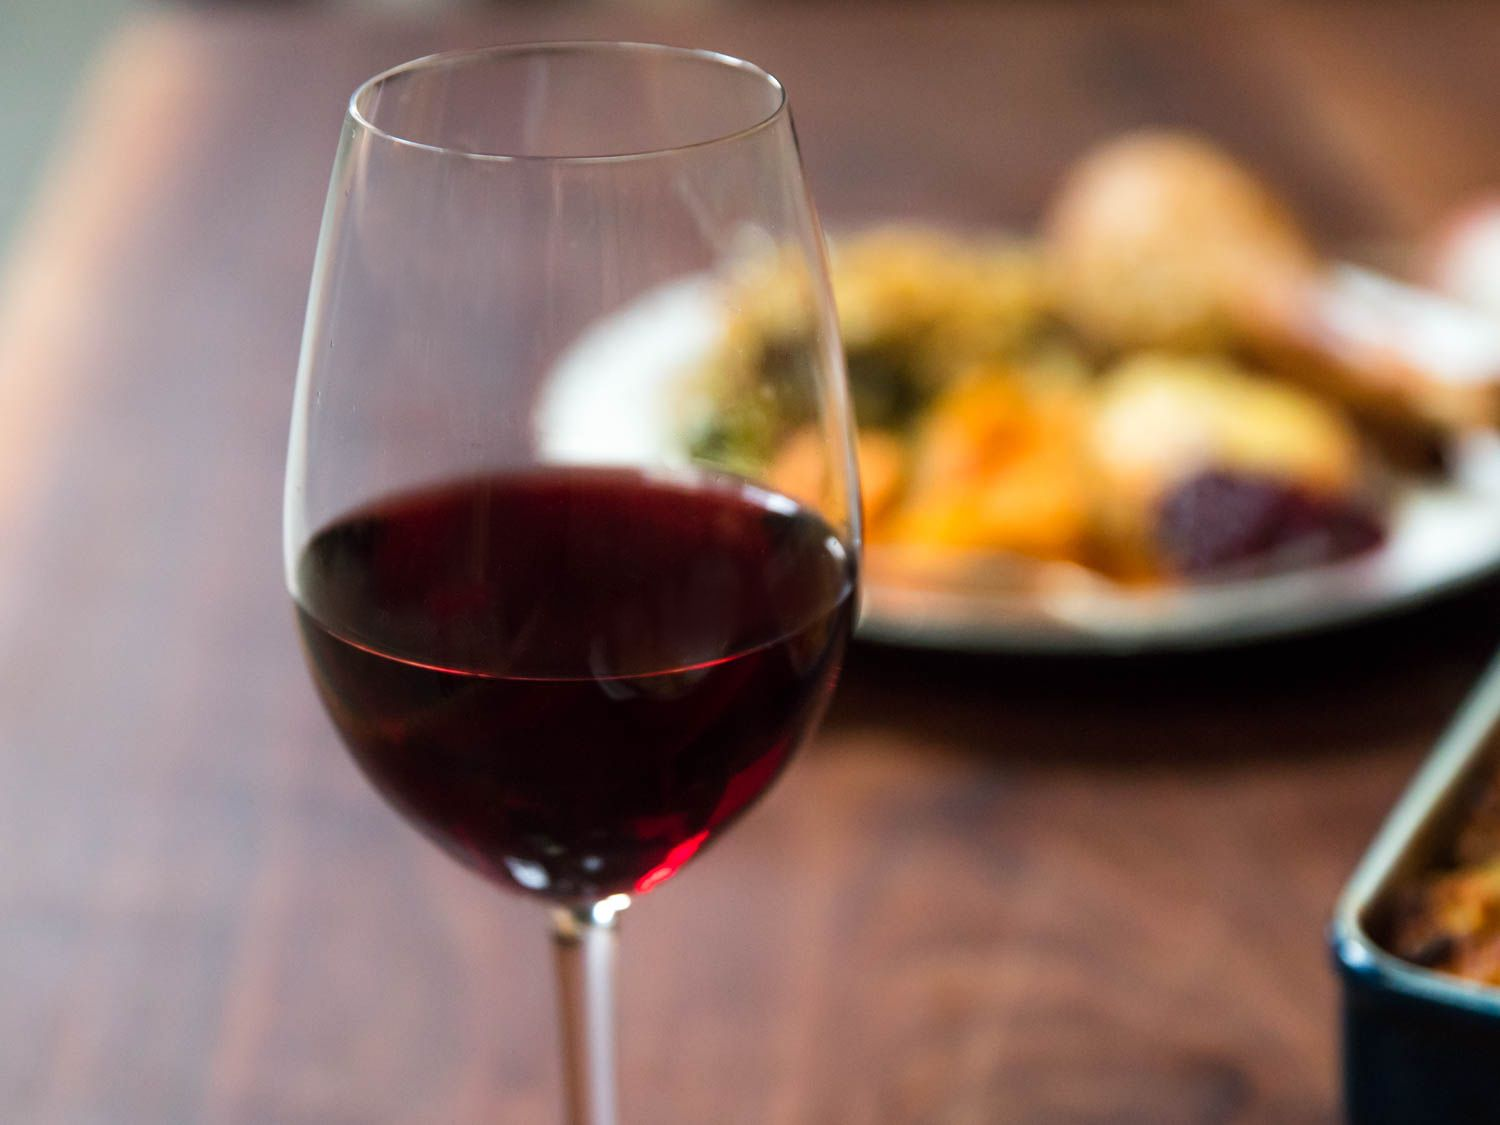 A glass of red wine sits on a table with a plate of food in the background